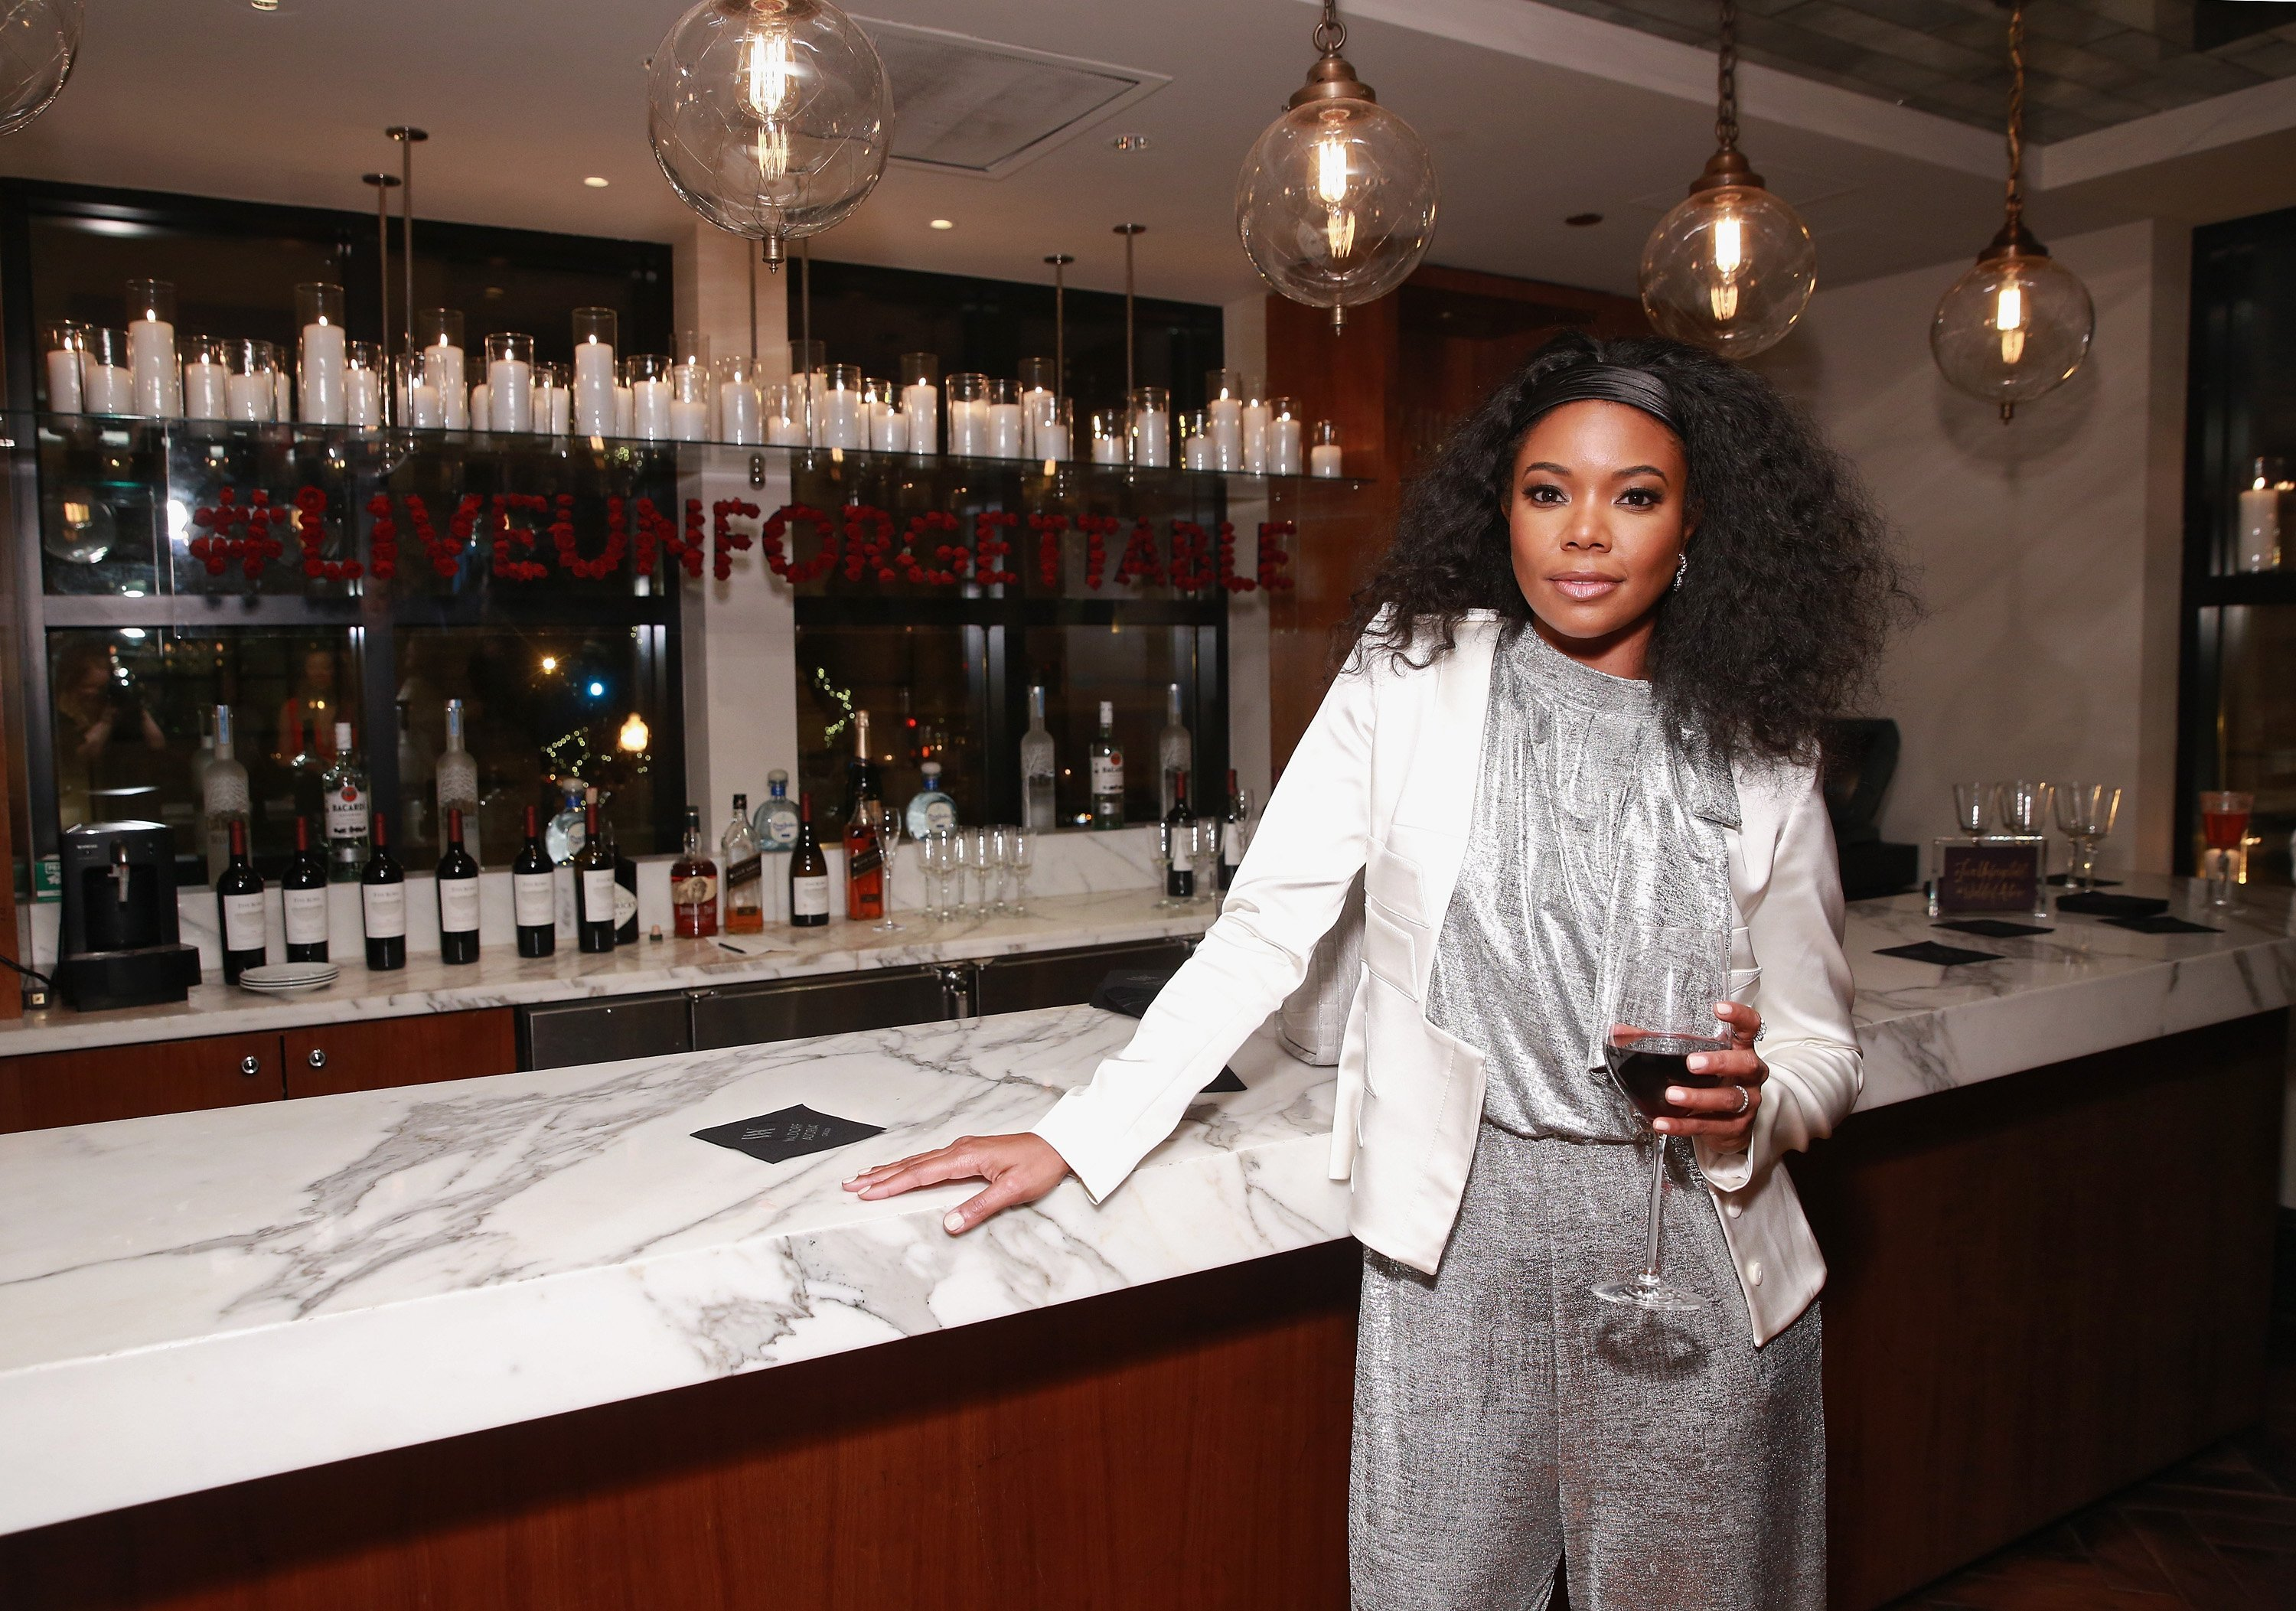 Gabrielle Union at the Live Unforgettable Dinner Series on Nov. 30, 2017 in Chicago, Illinois | Photo: Getty Images